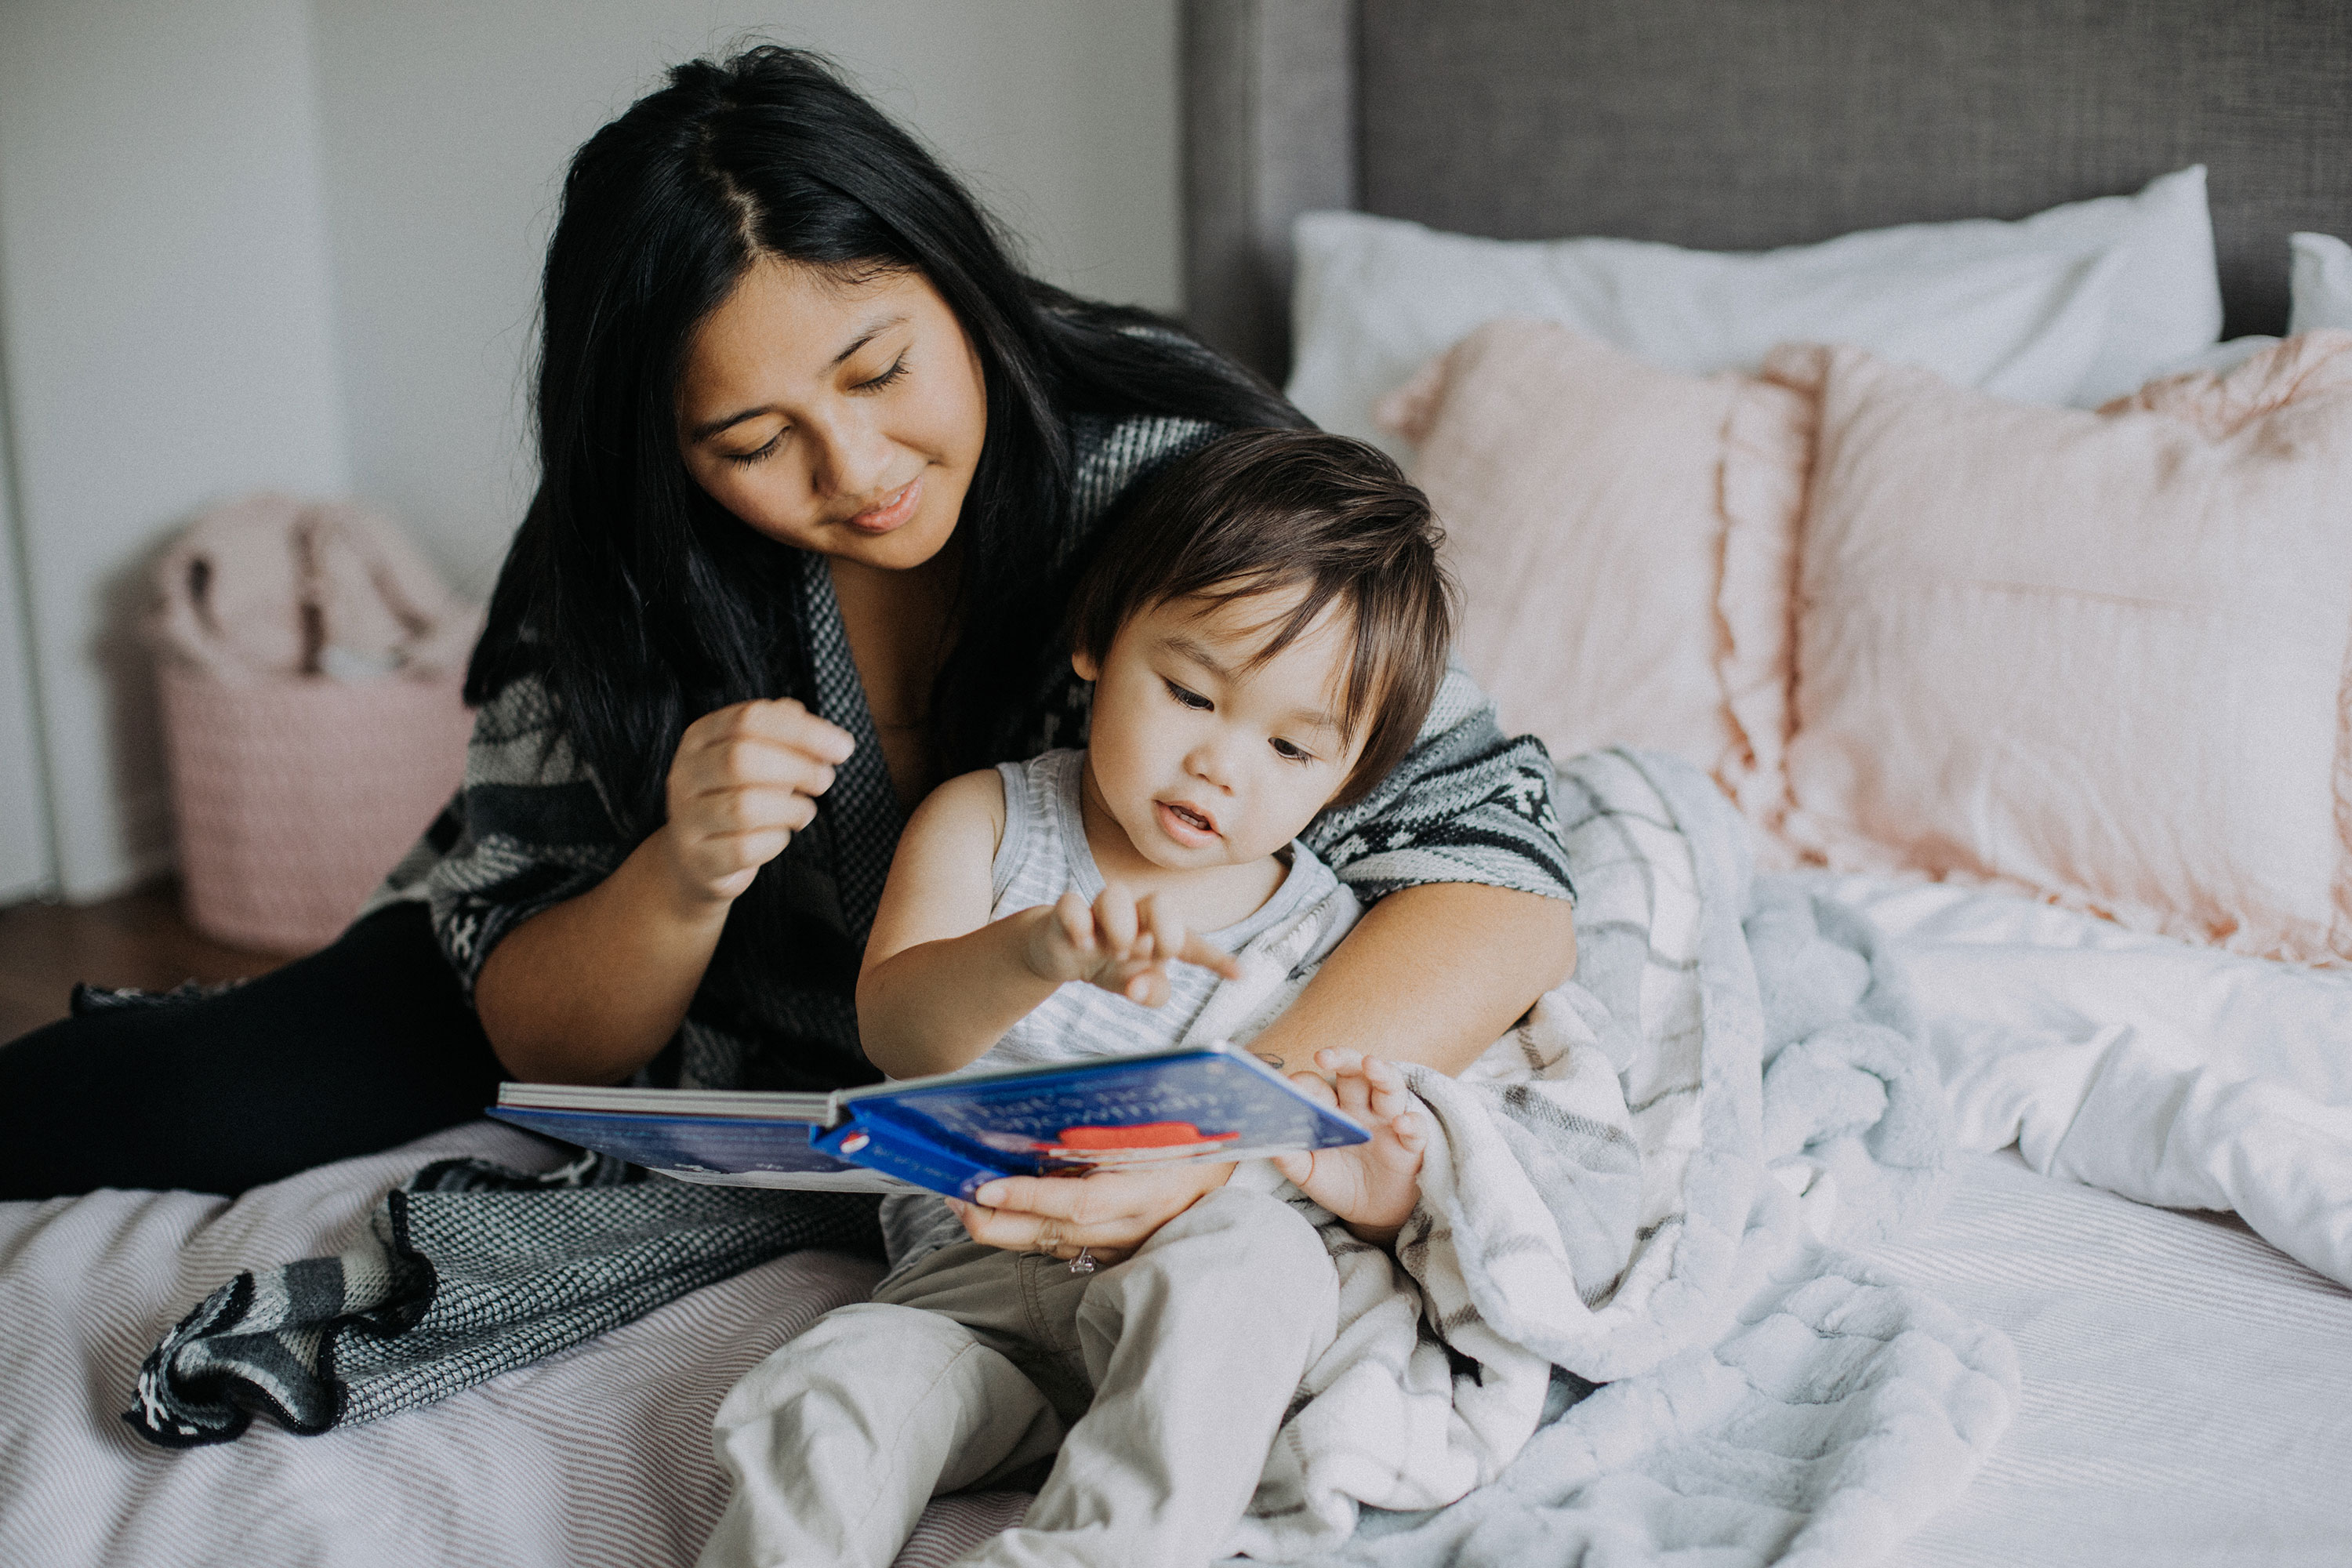 Going into parenthood is no easy feat... mamas, take care of yourself. Here are 5 things every mom should tell herself